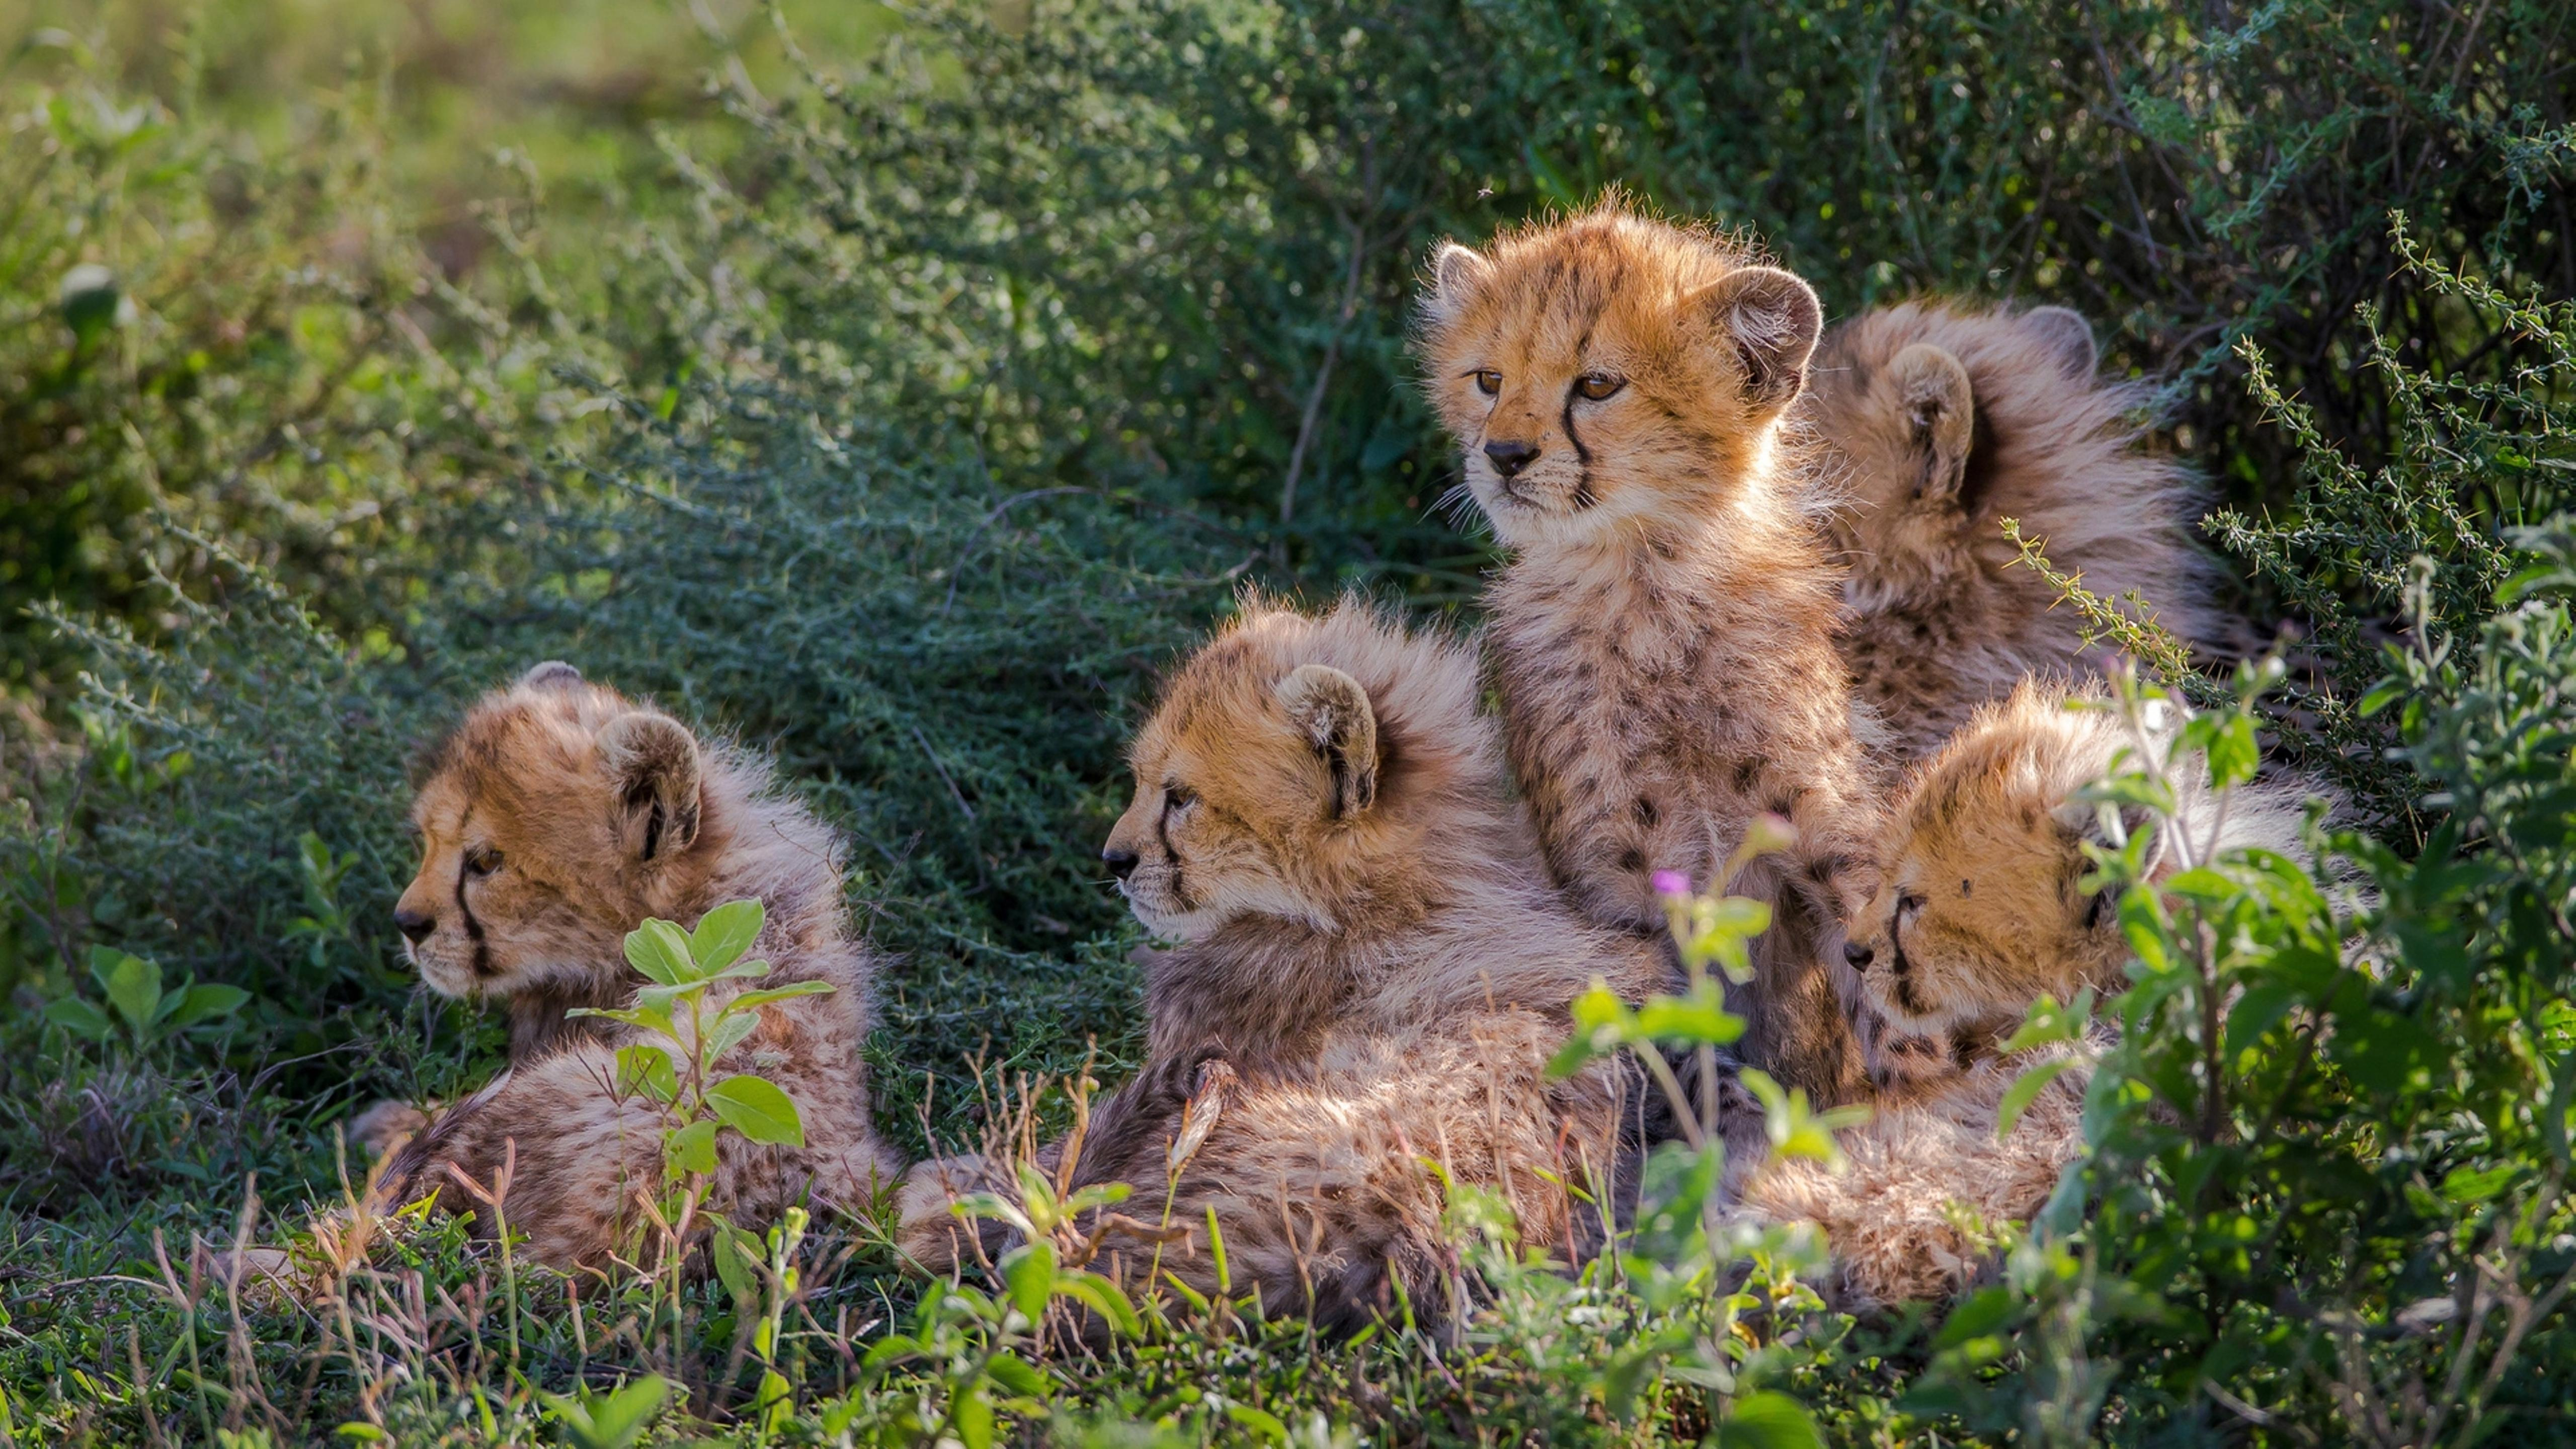 many sweet cheetahs cubs - wild animals wallpaper wallpaper download